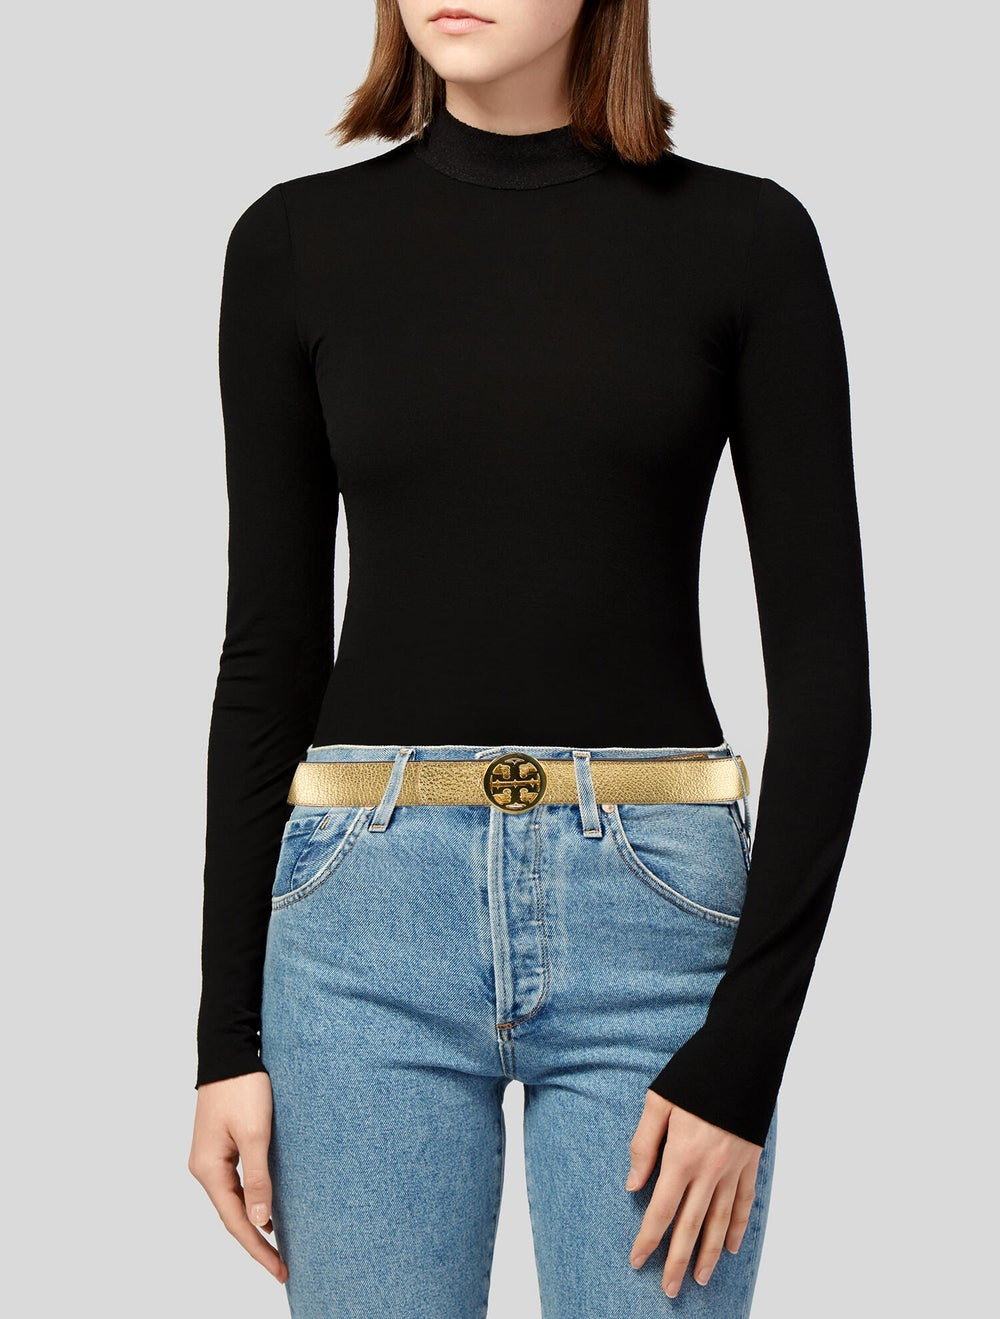 Tory Burch Leather Belt Gold - image 2